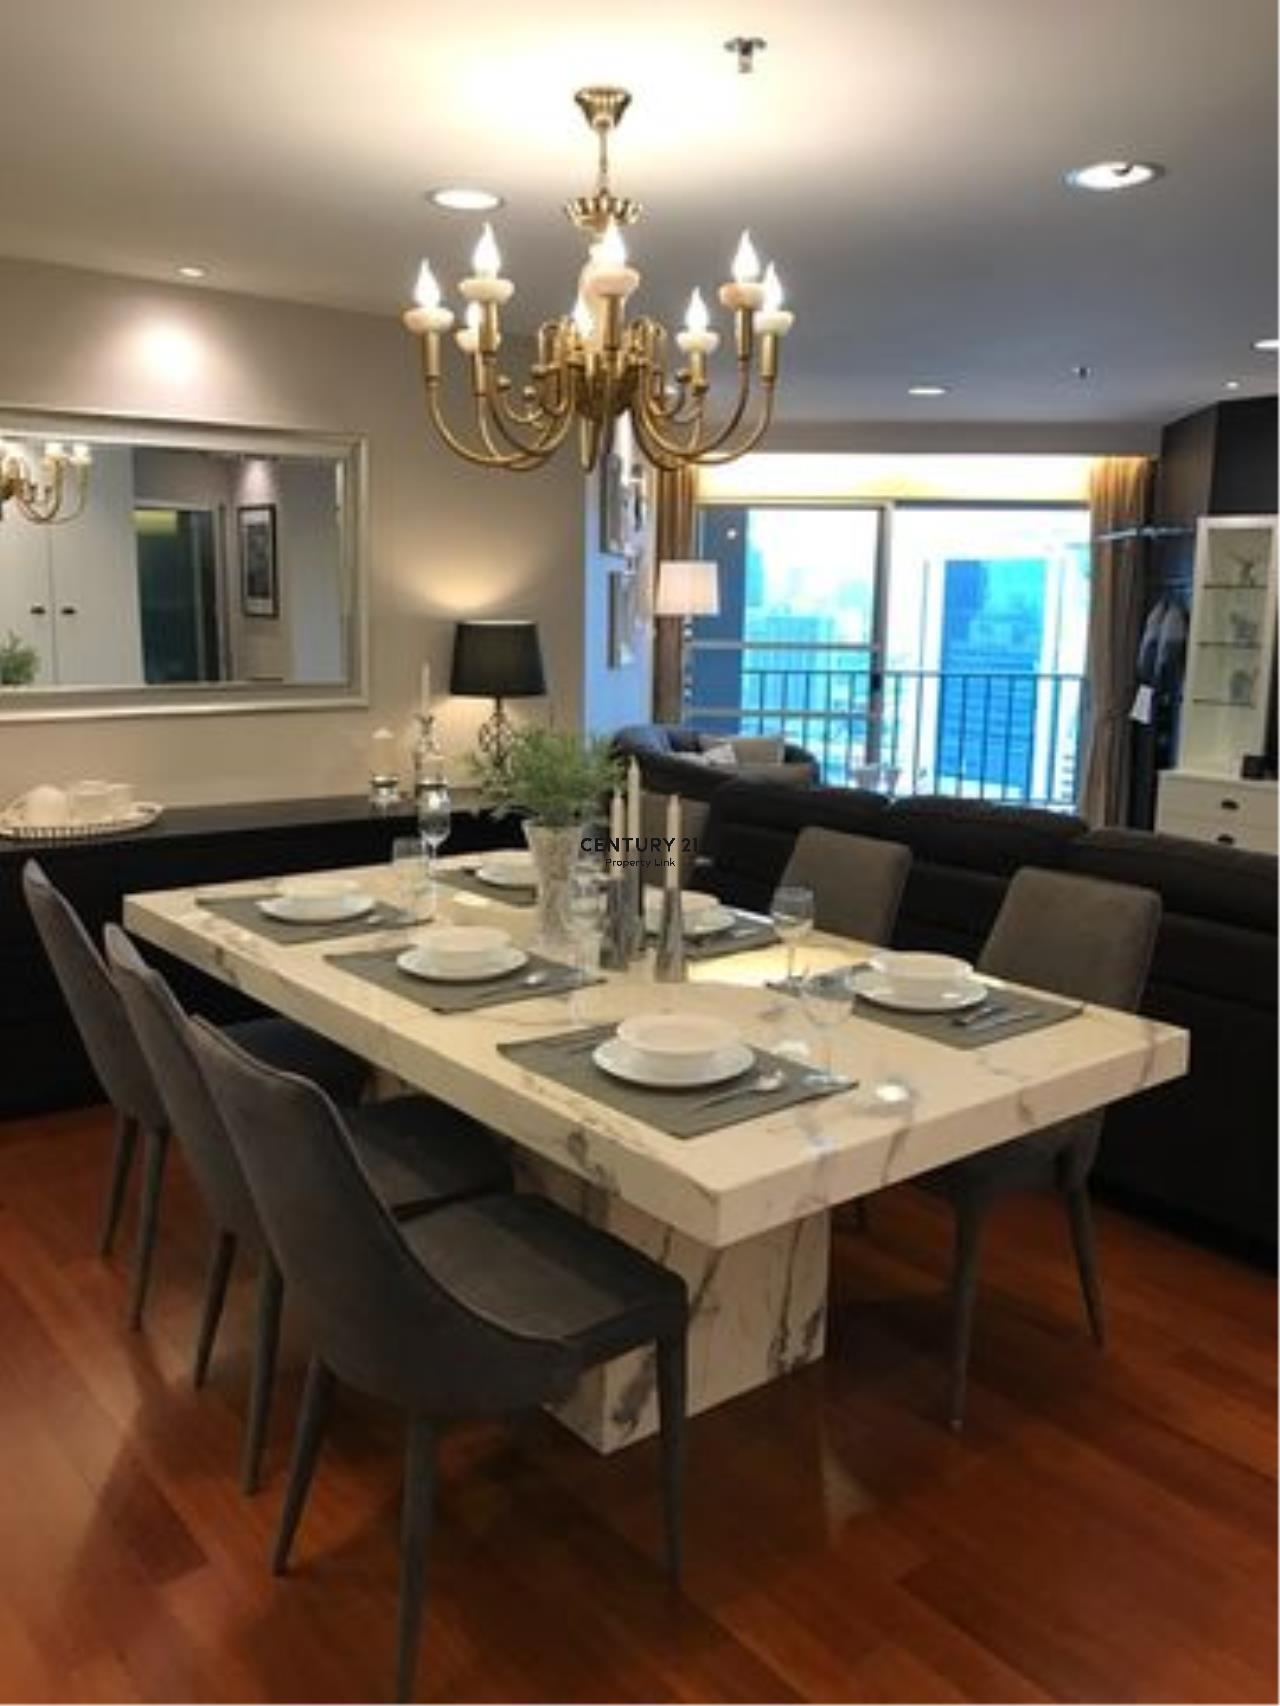 Century21 Property Link Agency's 39-CC-61594 BELLE GRAND RAMA 9 Condo for rent 3 bedrooms BTS RAMA 9 Huai Khwang Rental 89,000 THB./ month 4